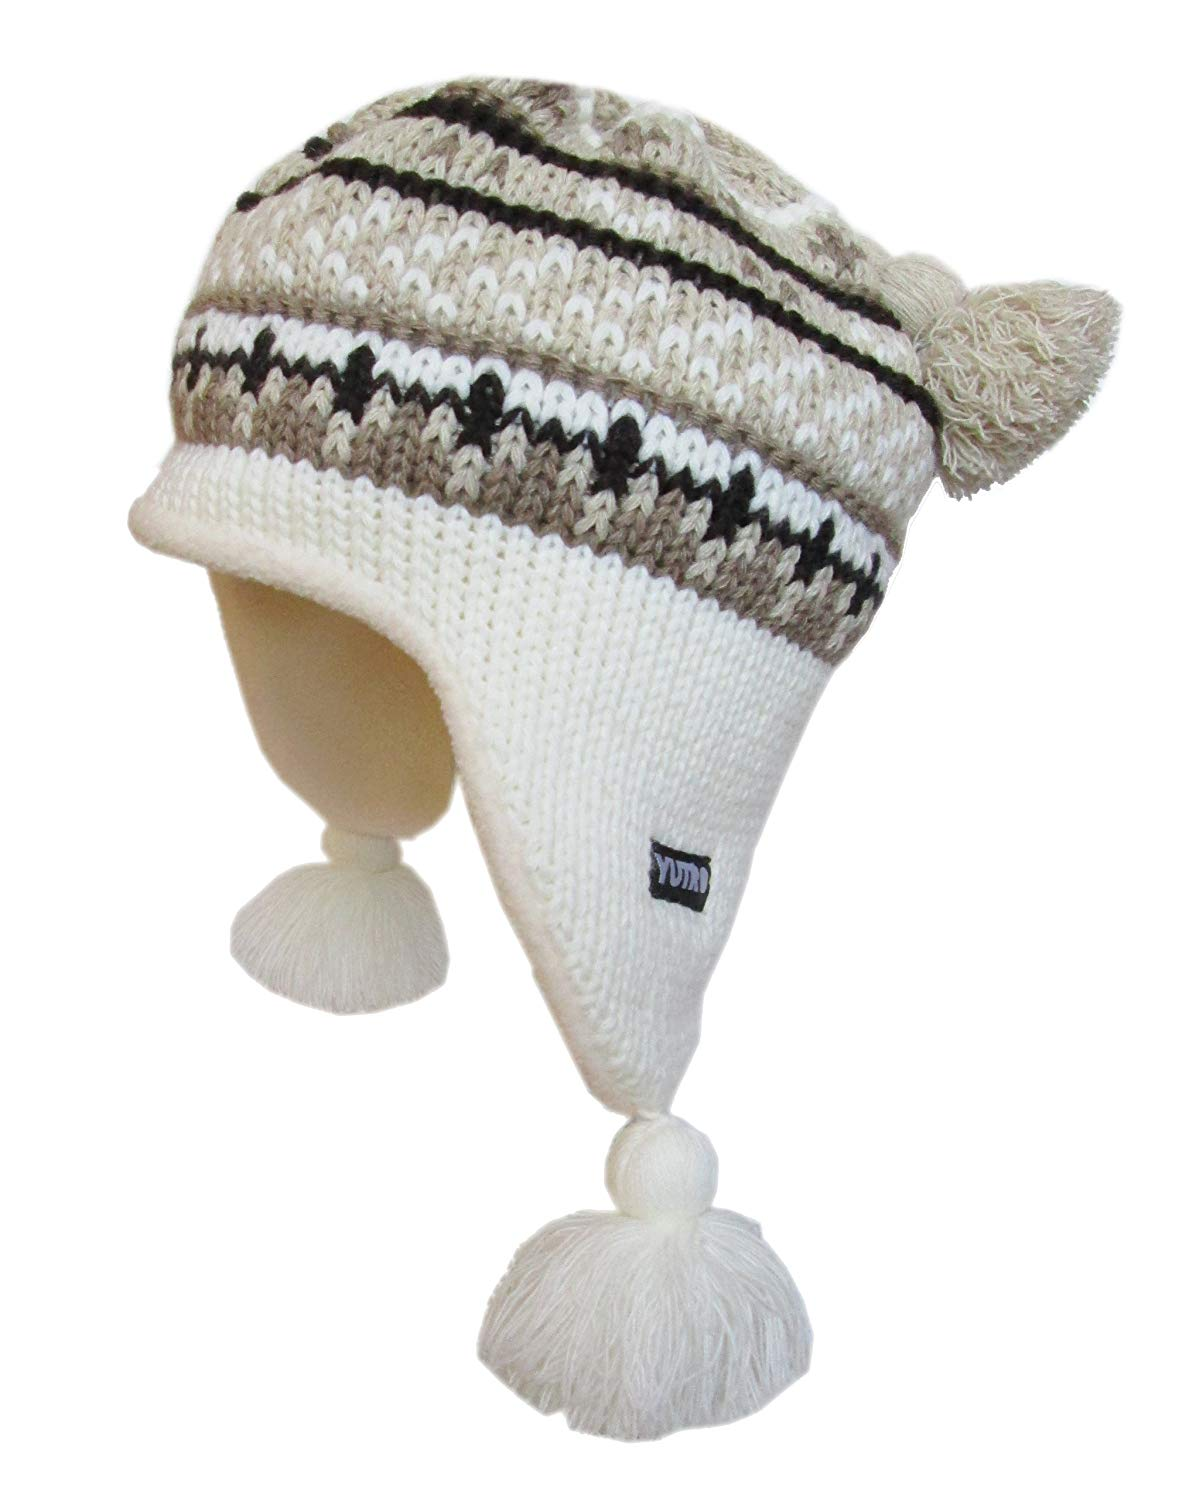 f6177e61d00 Get Quotations · YUTRO Wool Knitted Ear Flap Ski Beanie Hat with Fleece  Lining One Size